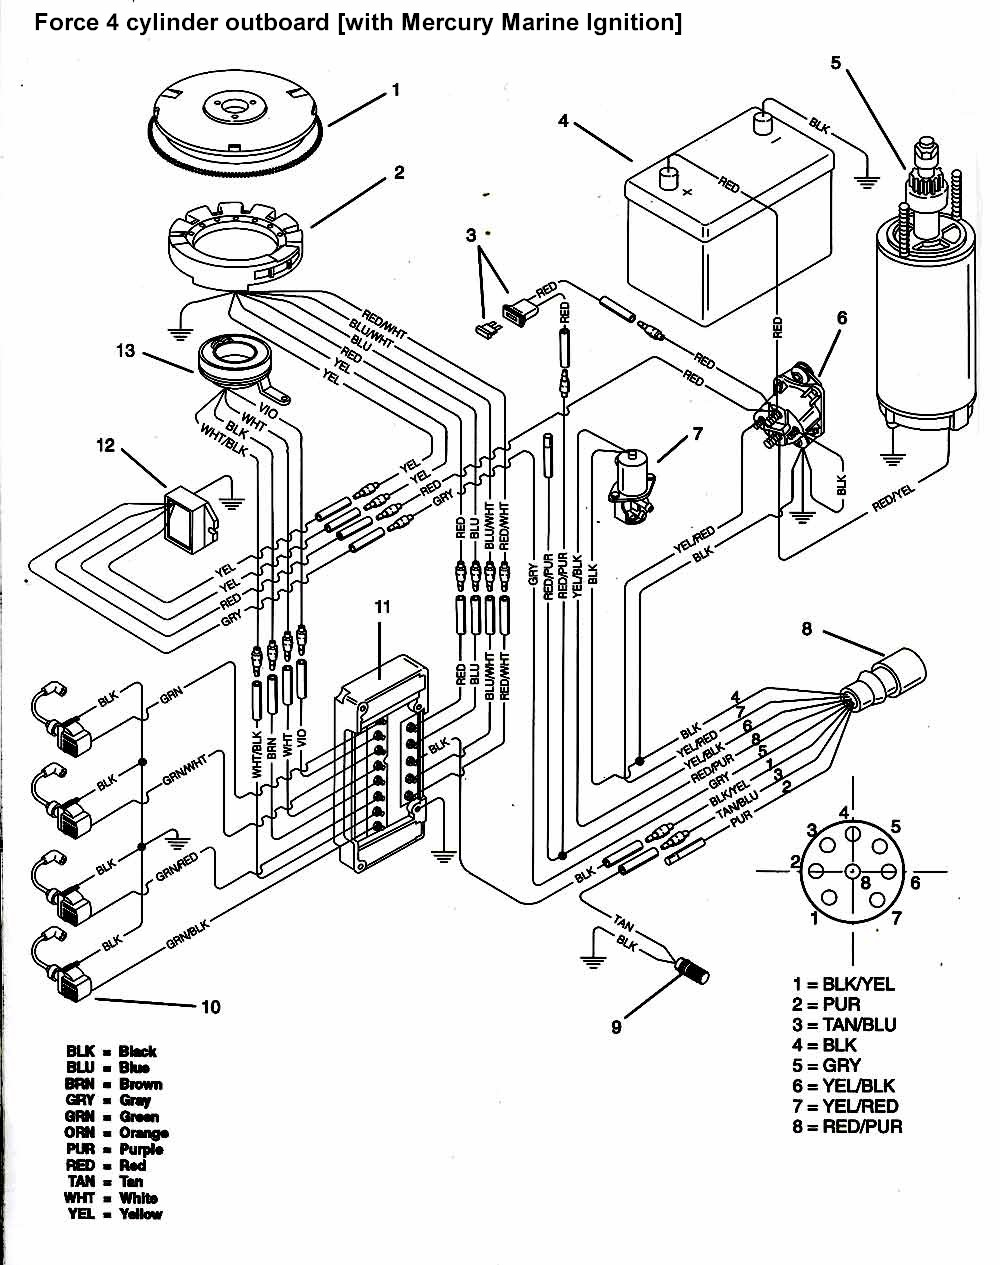 50 mercury wiring harness diagram dy 2101  wiring diagram besides mercury outboard ignition switch  wiring diagram besides mercury outboard